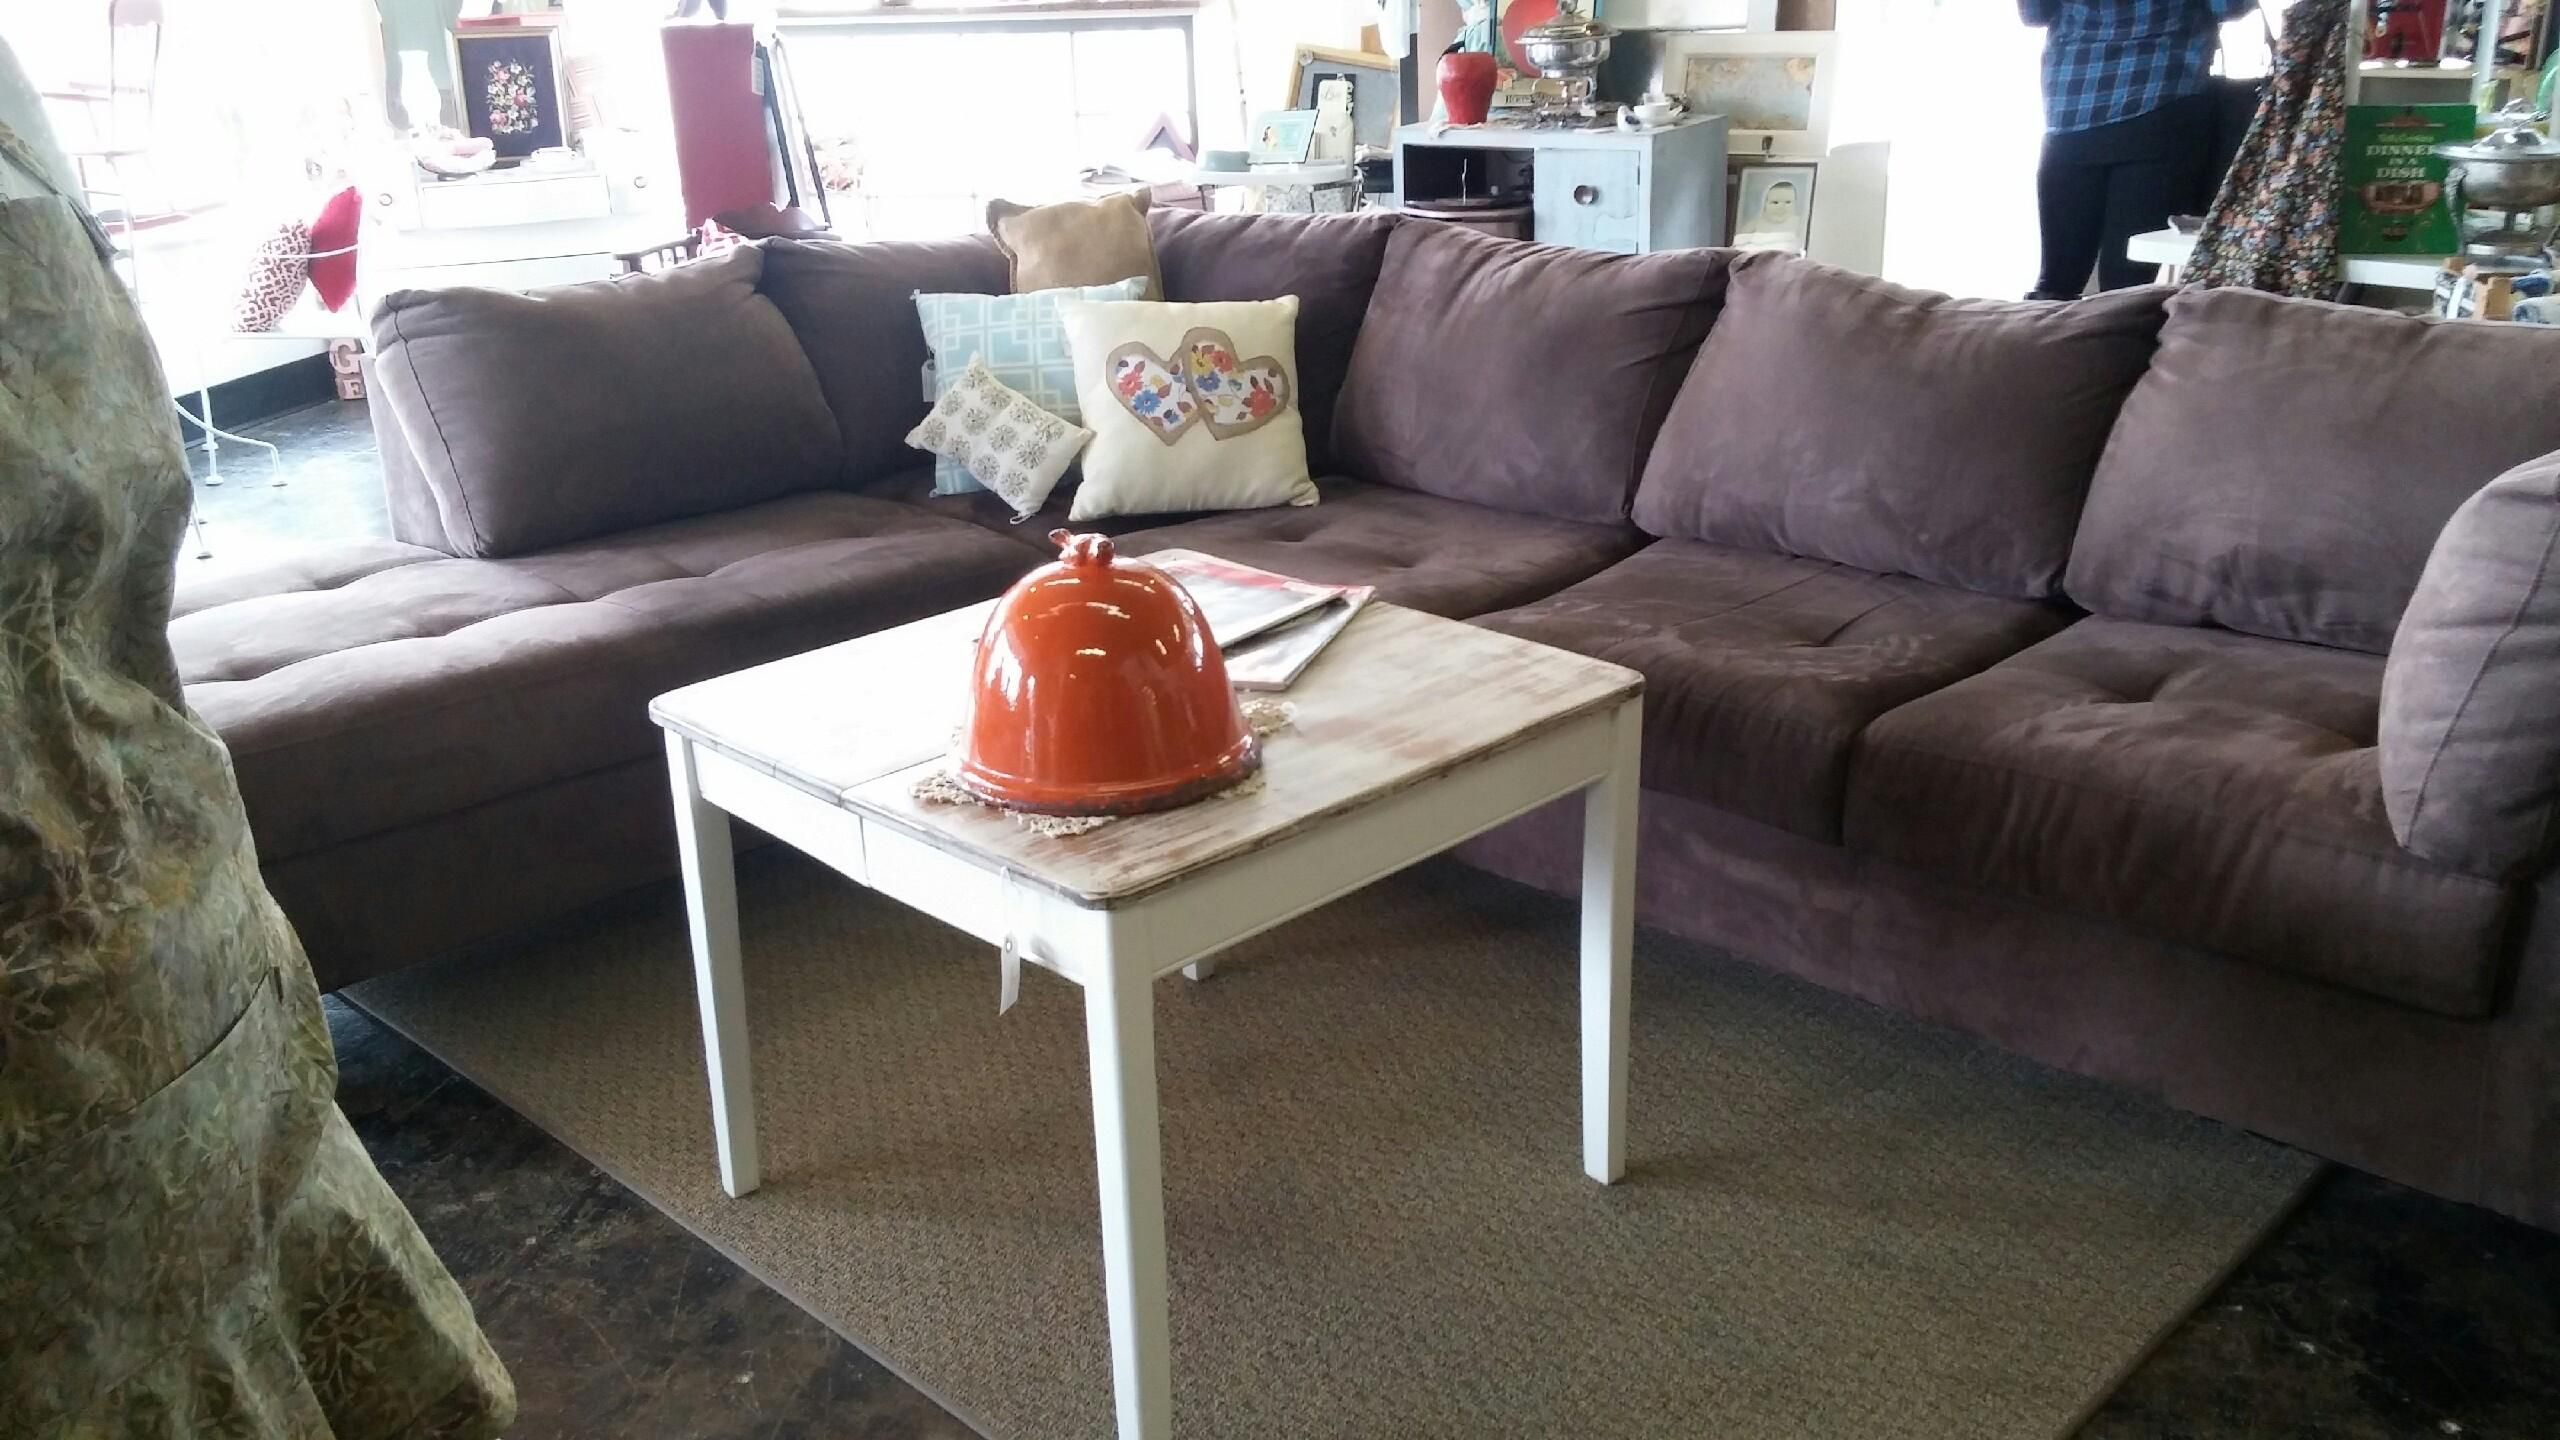 Pinmustard Seed Home Decor & More On Furniture Within French Seamed Sectional Sofas Oblong Mustard (View 7 of 15)